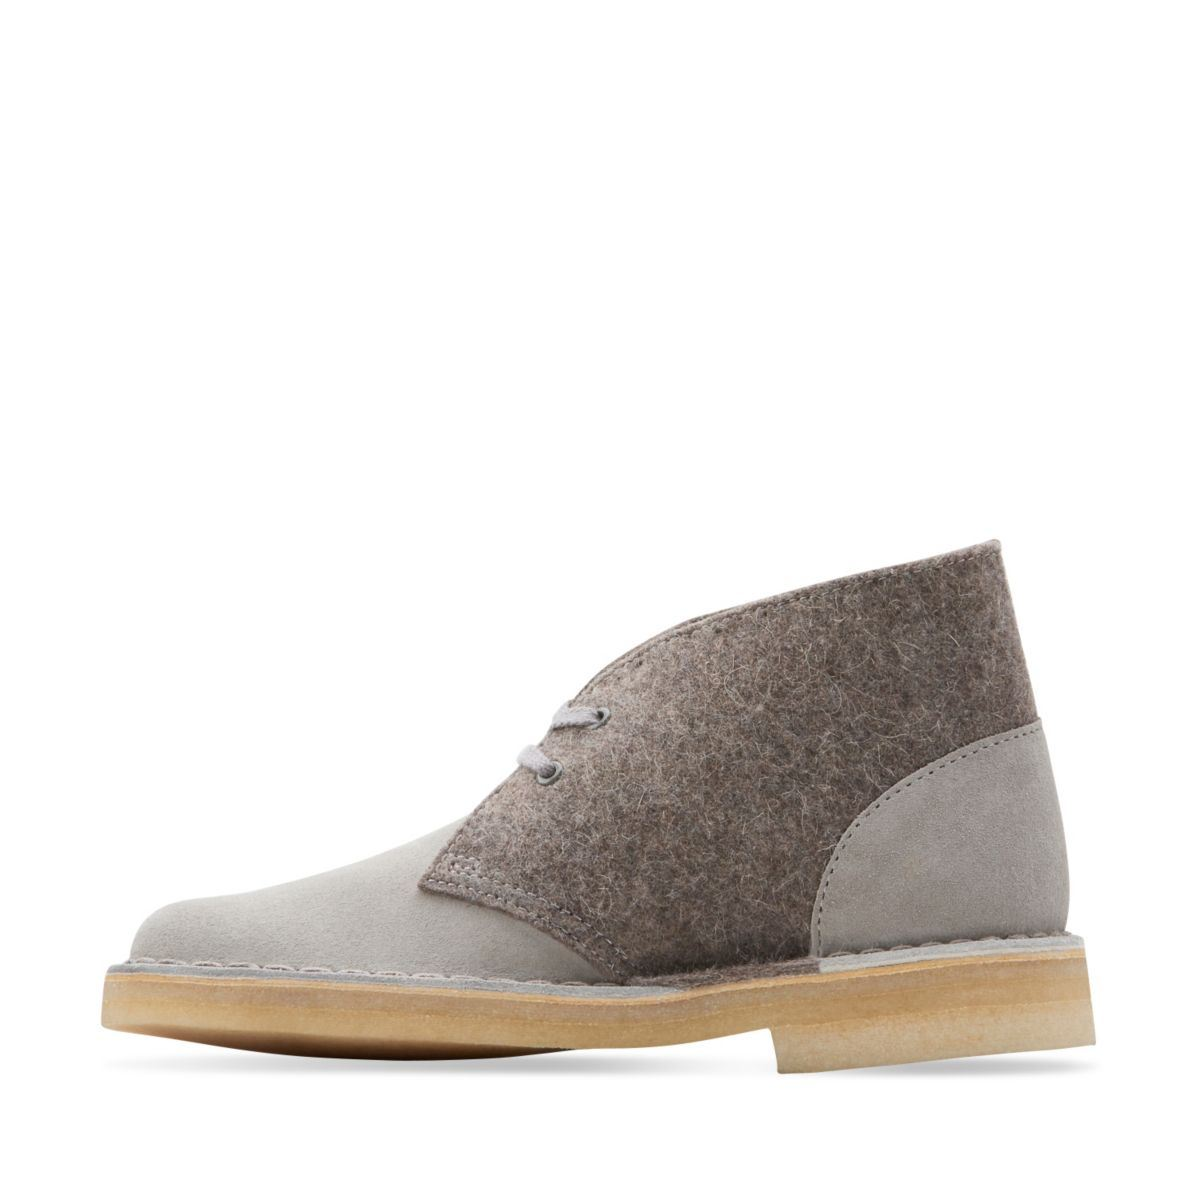 Wonderful Empress Moon Desert Boots For Women  Clarks Blog